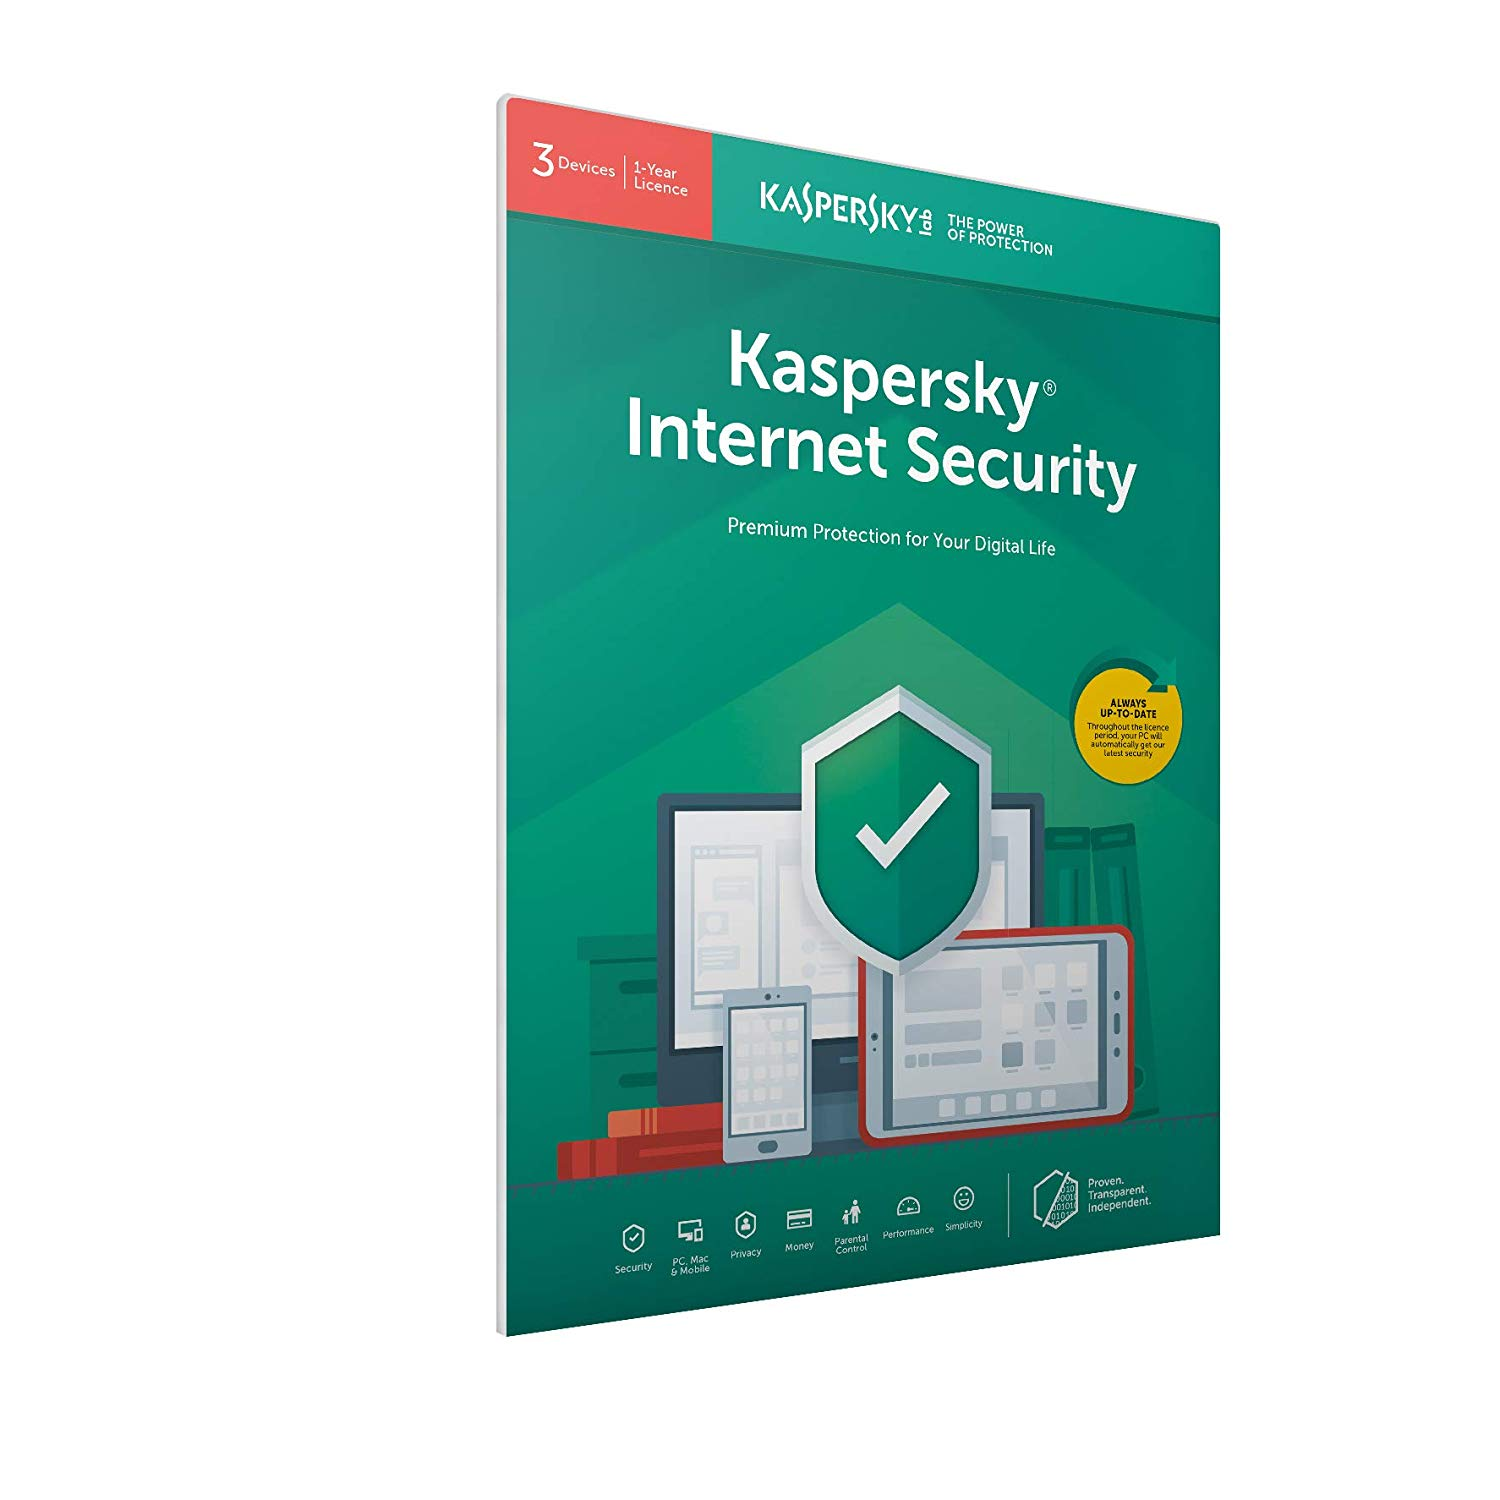 6 Best Antivirus Software According to Reddit 2019 Guide